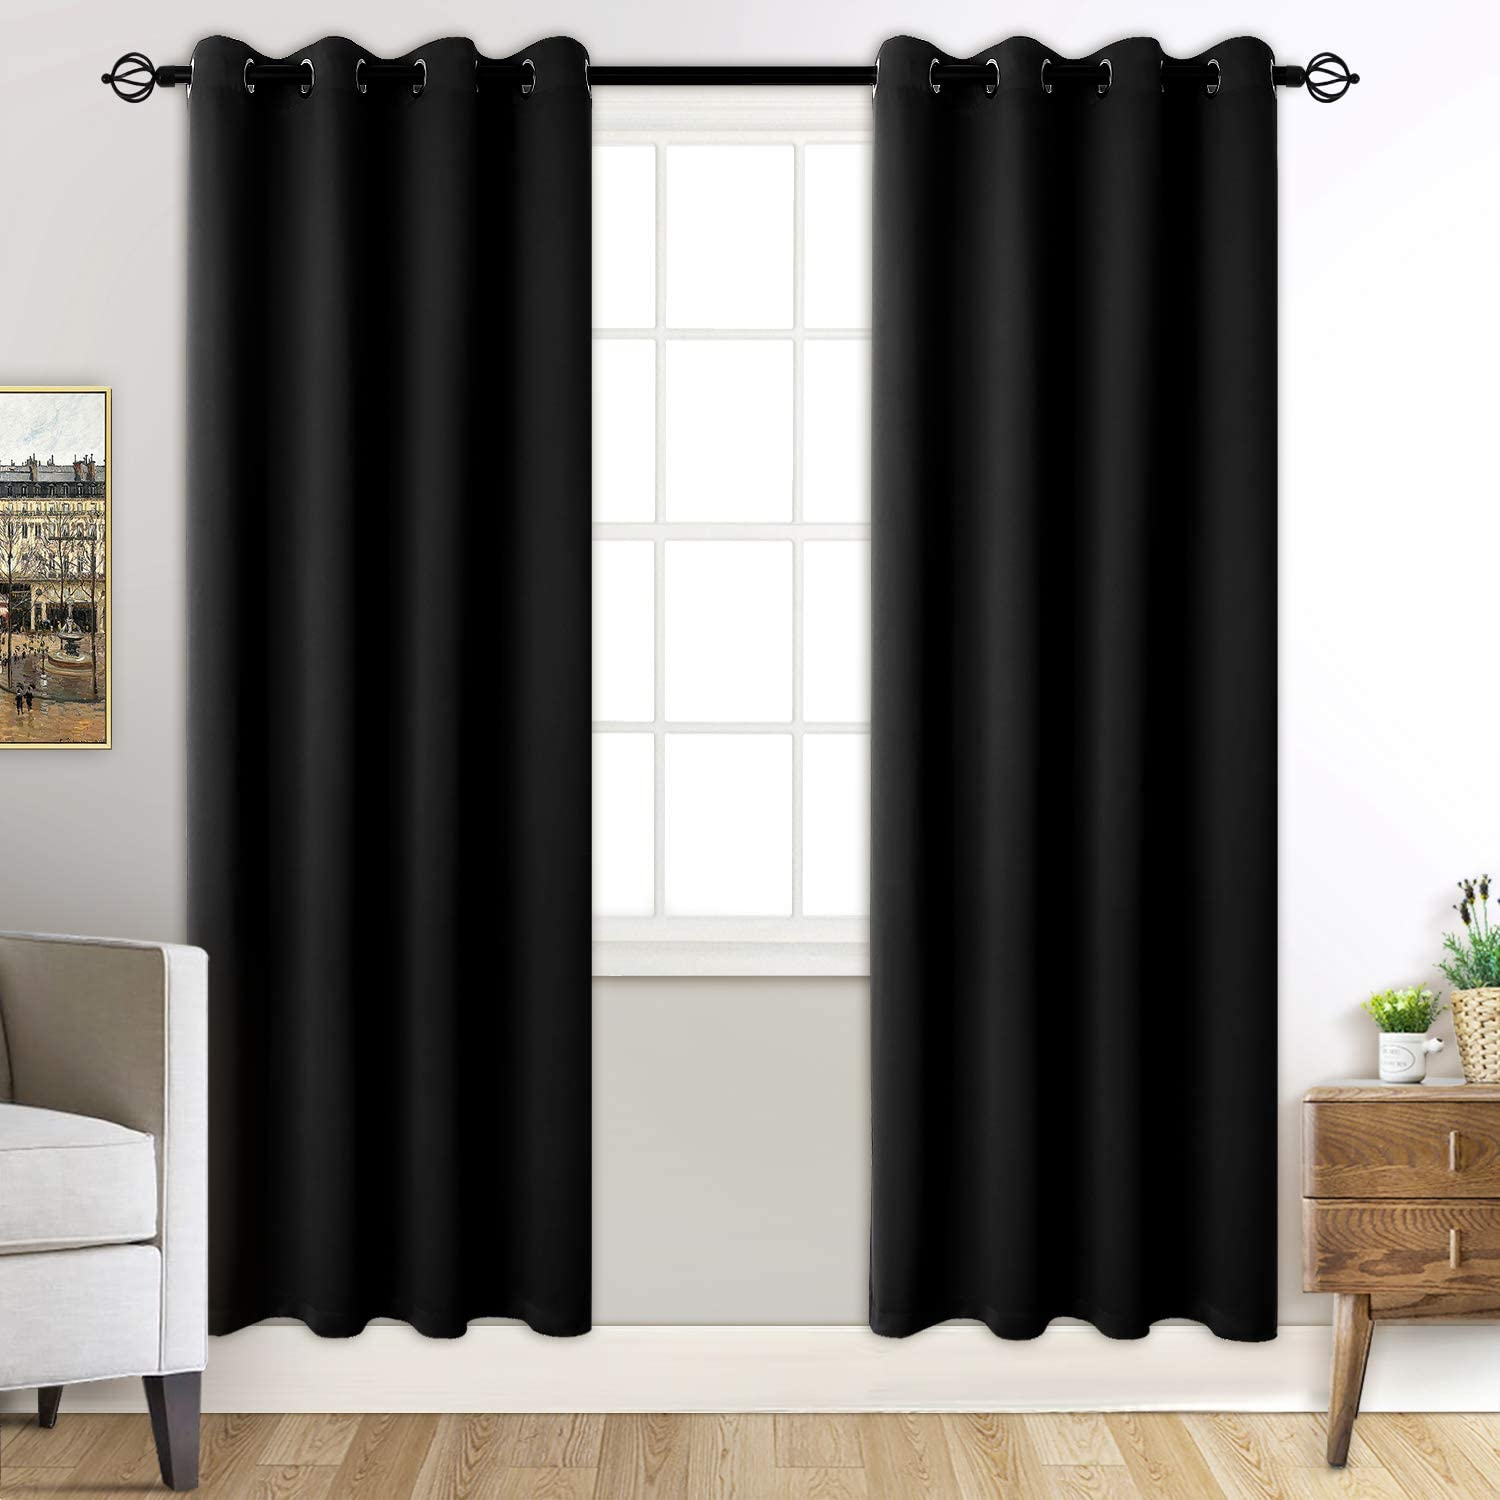 Beige Rutterllow 2 Panels Set Blackout Grommet Curtains Thermal Insulated Noise Reducing Darkening Drapes for Bedroom 42 x 63 Inch